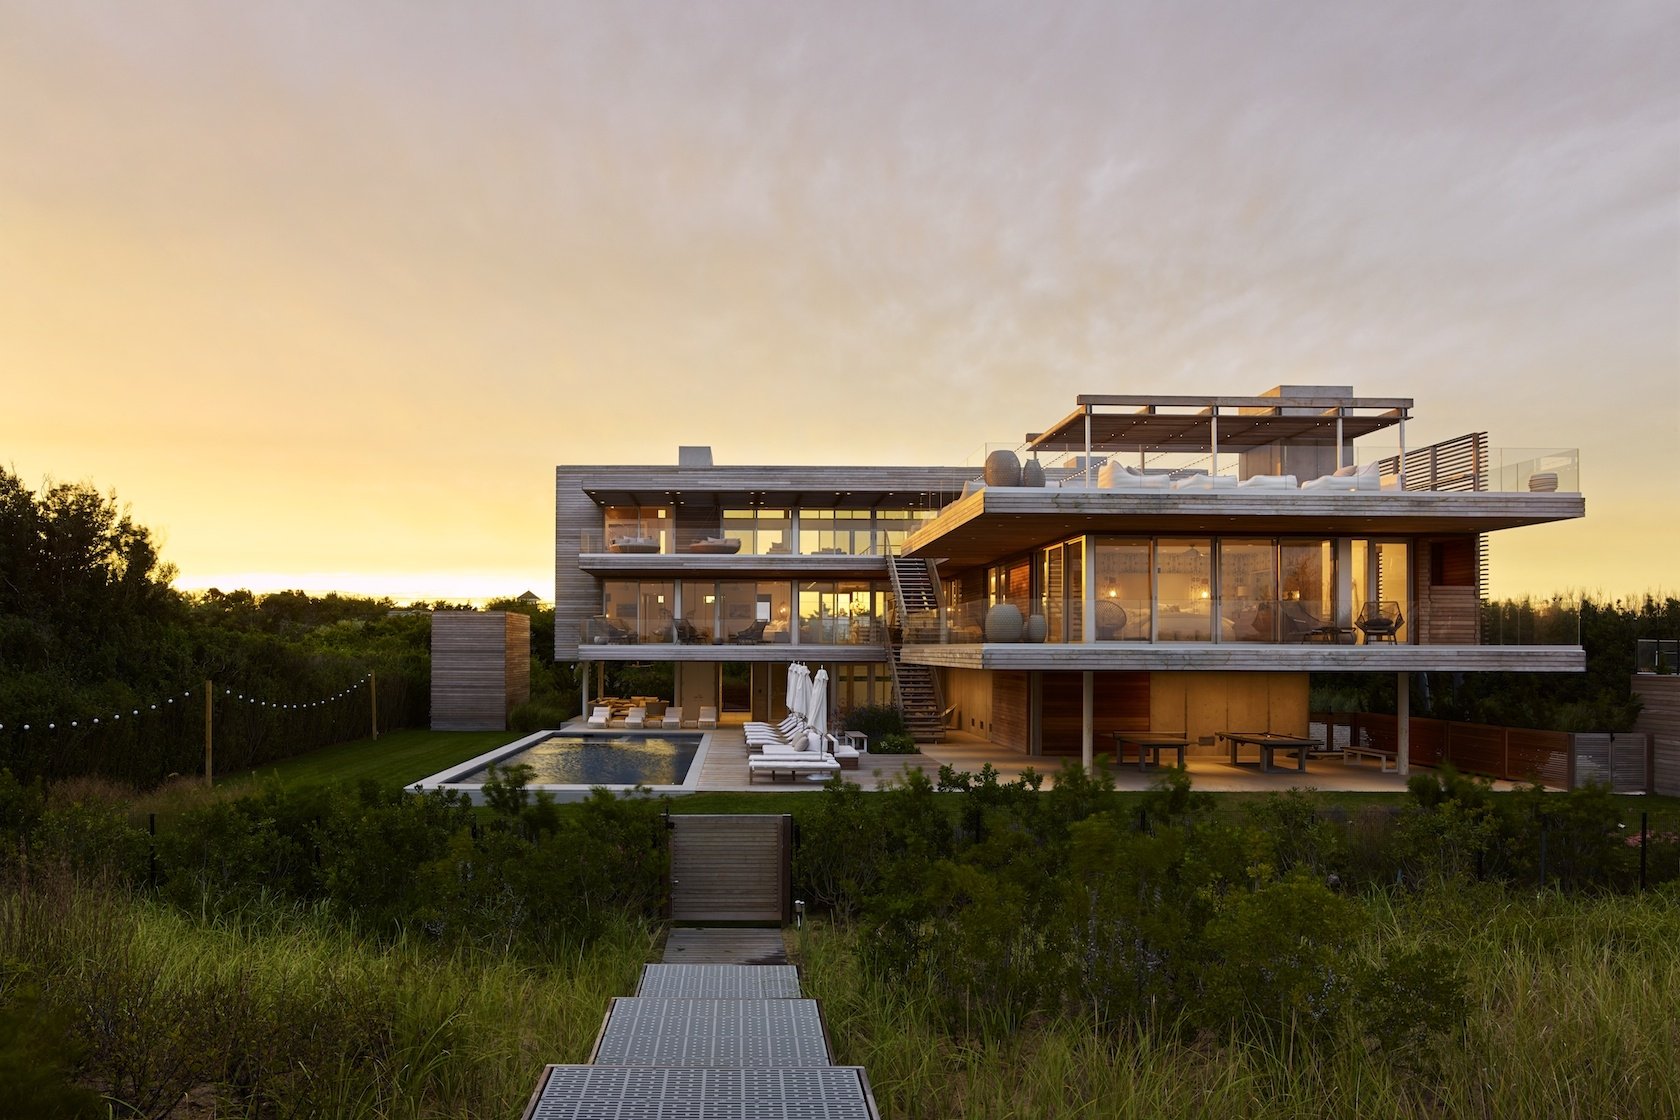 Bridgehampton, NY modern house on the ocean